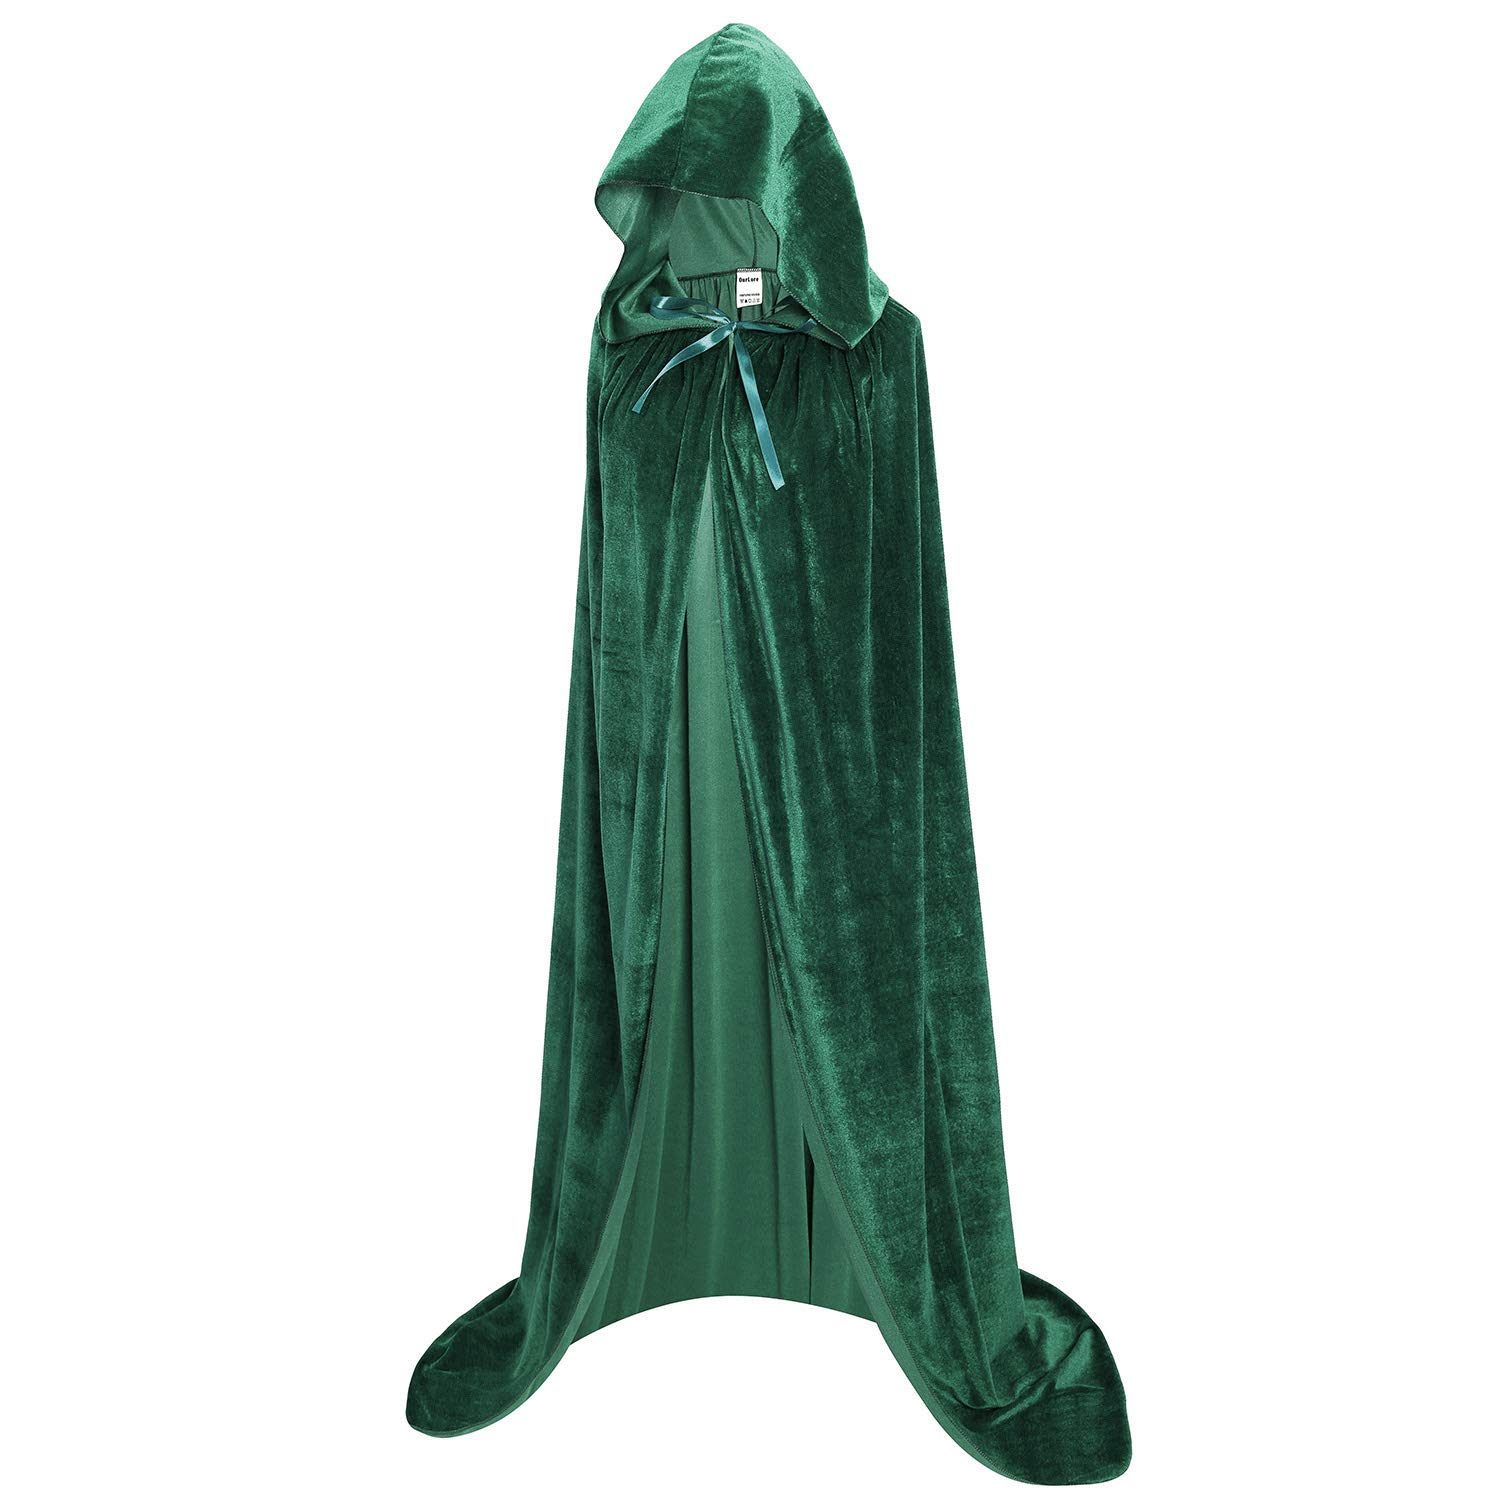 New Ourlove Fashion Unisex Full Length Hooded Cape Halloween Christmas Adult ..